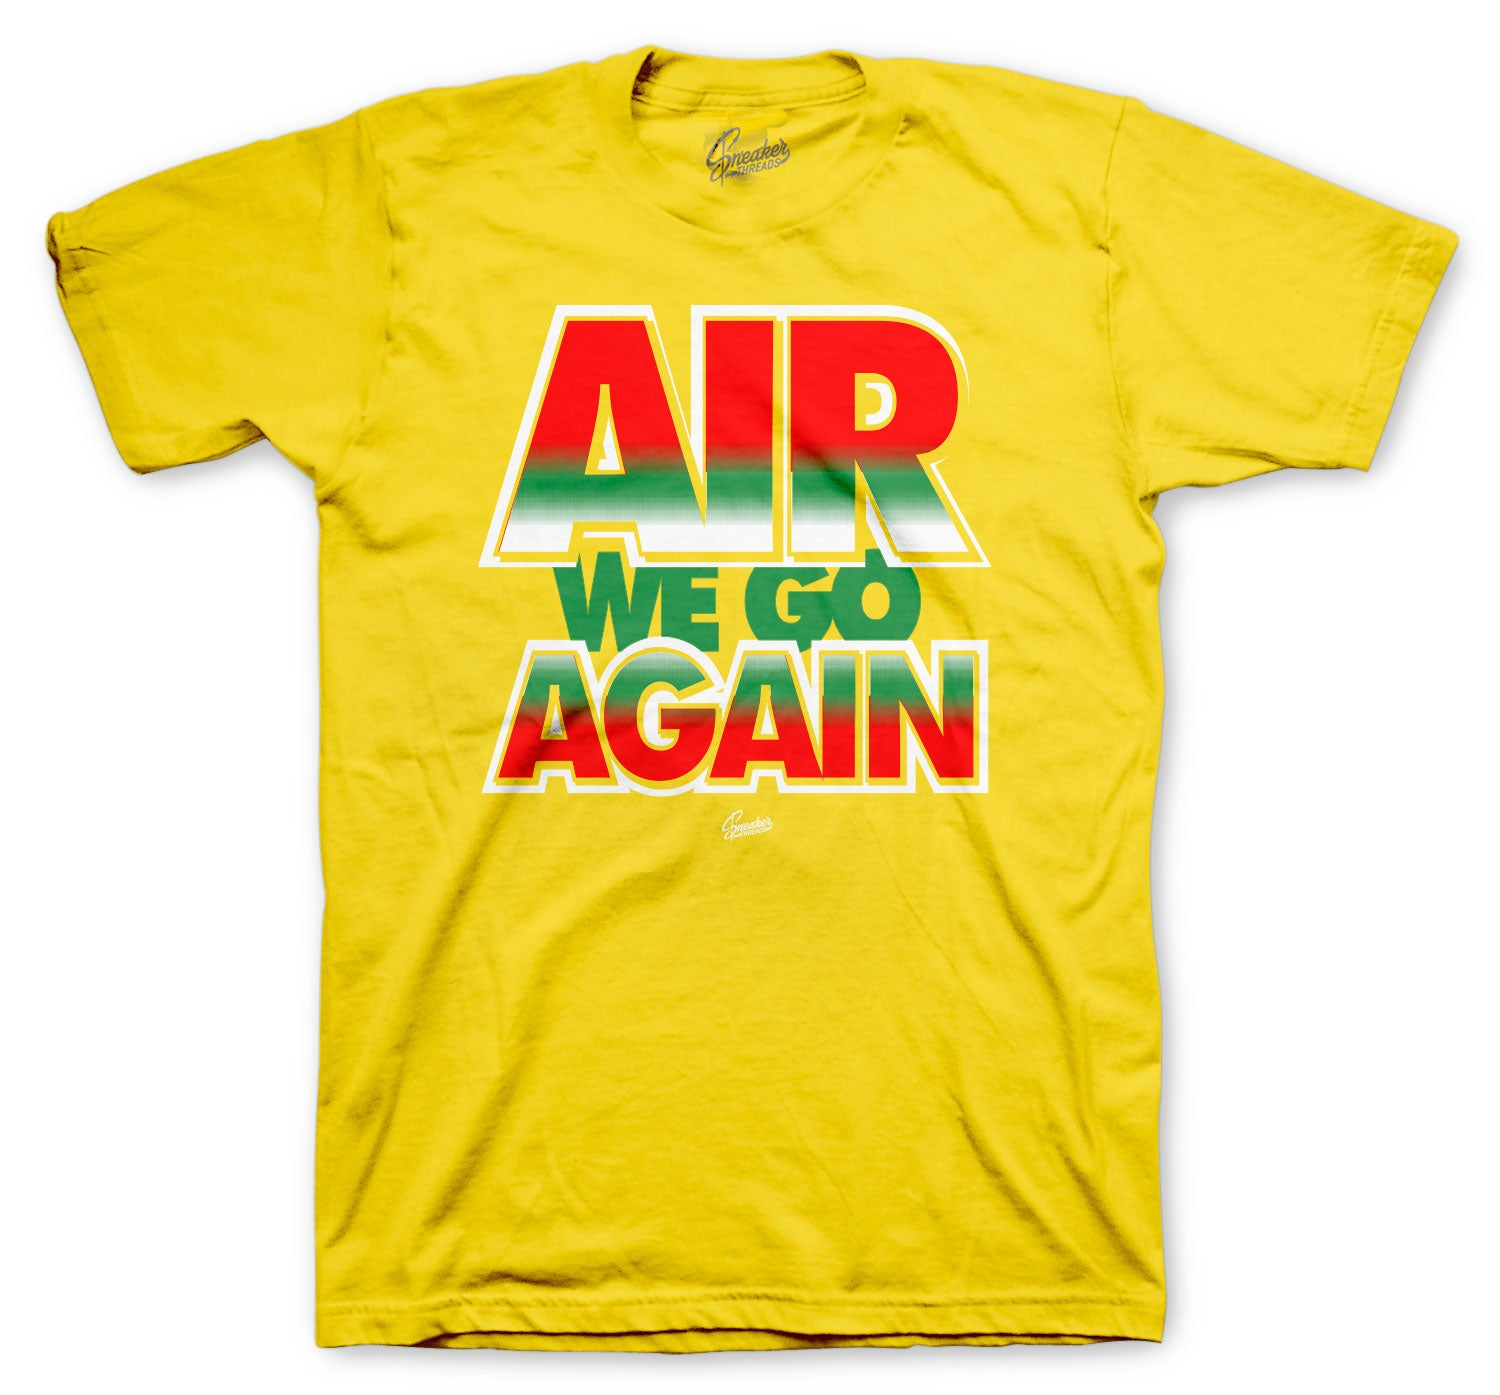 Rasta Jordan 4 sneaker collection matching shirt collection for guys